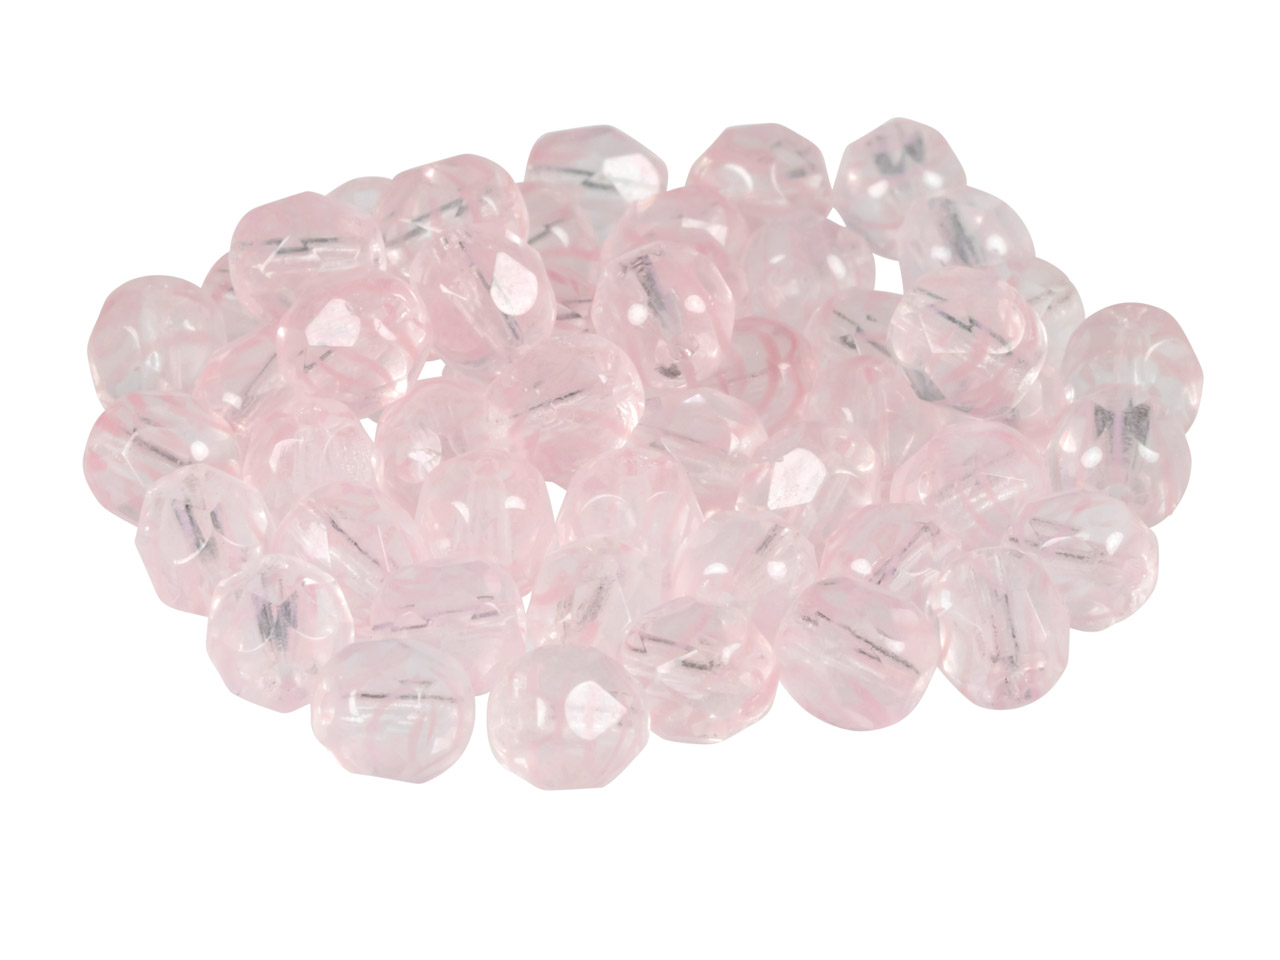 6mm Czech Fire Polished Glass      Beads, 2-tone Light Rose,          Pack of 50